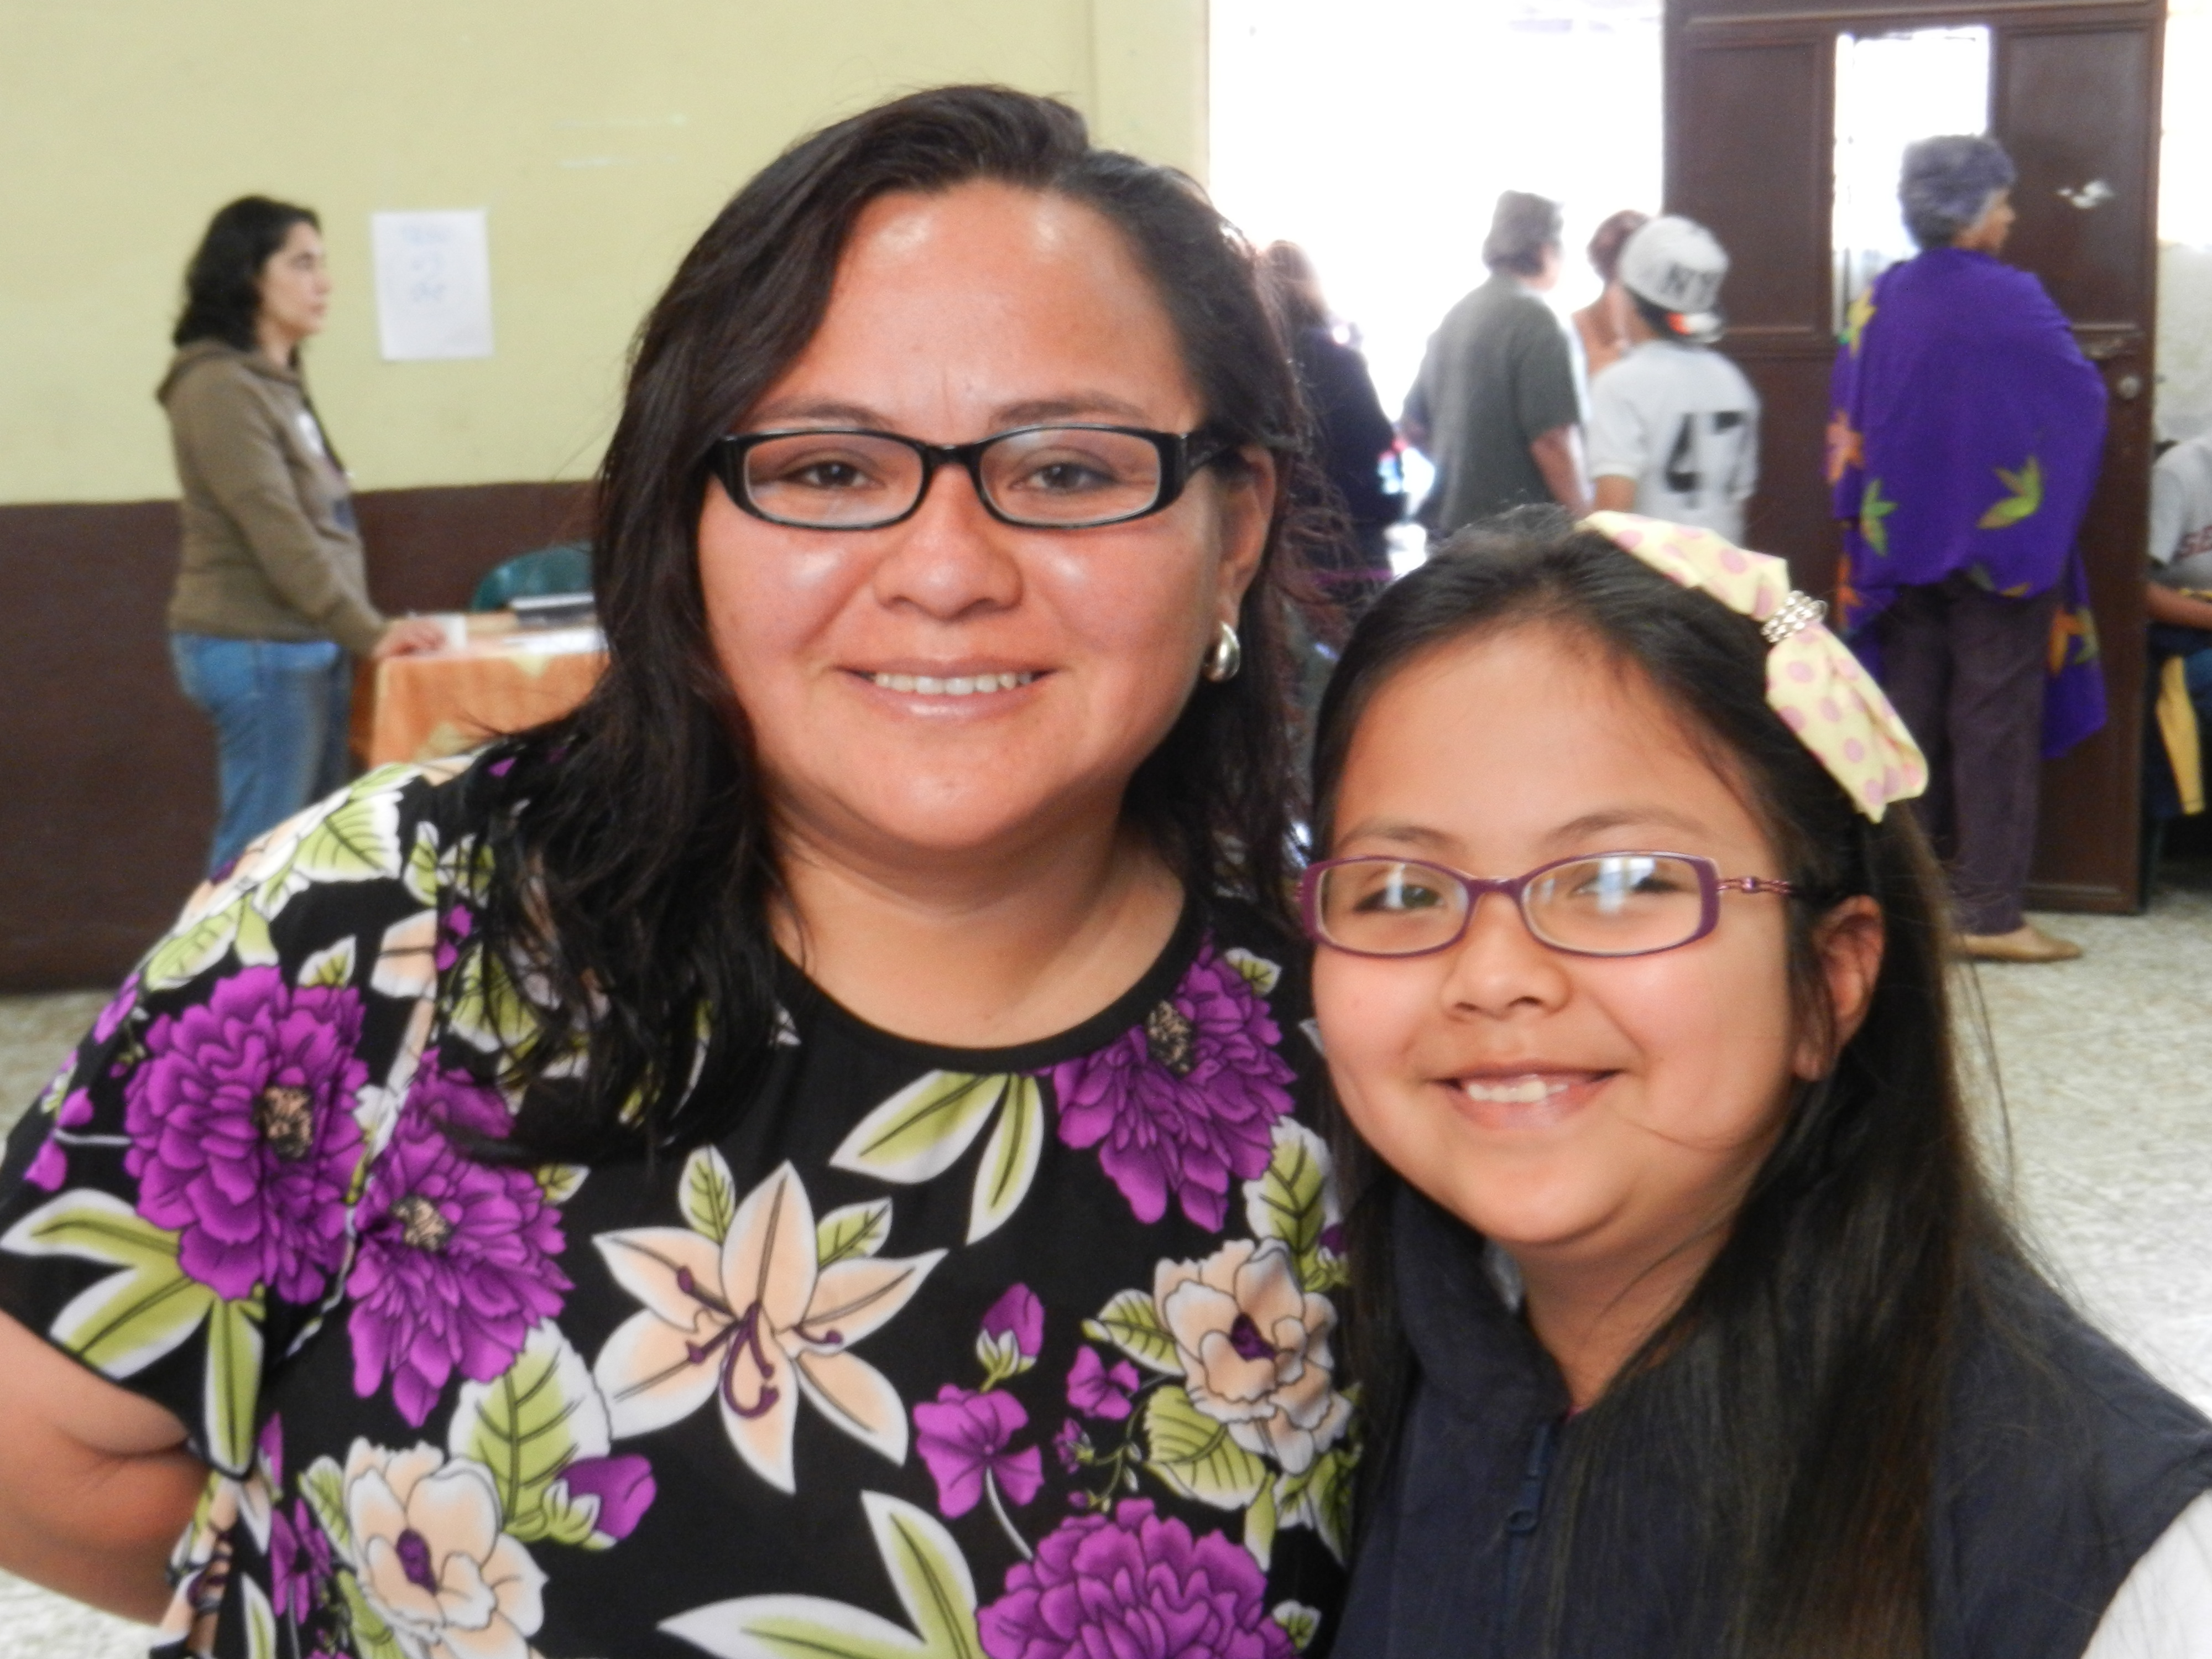 A mother and her daughter who were provided with glasses during Glasses for Guatemala's third service trip. (2015)